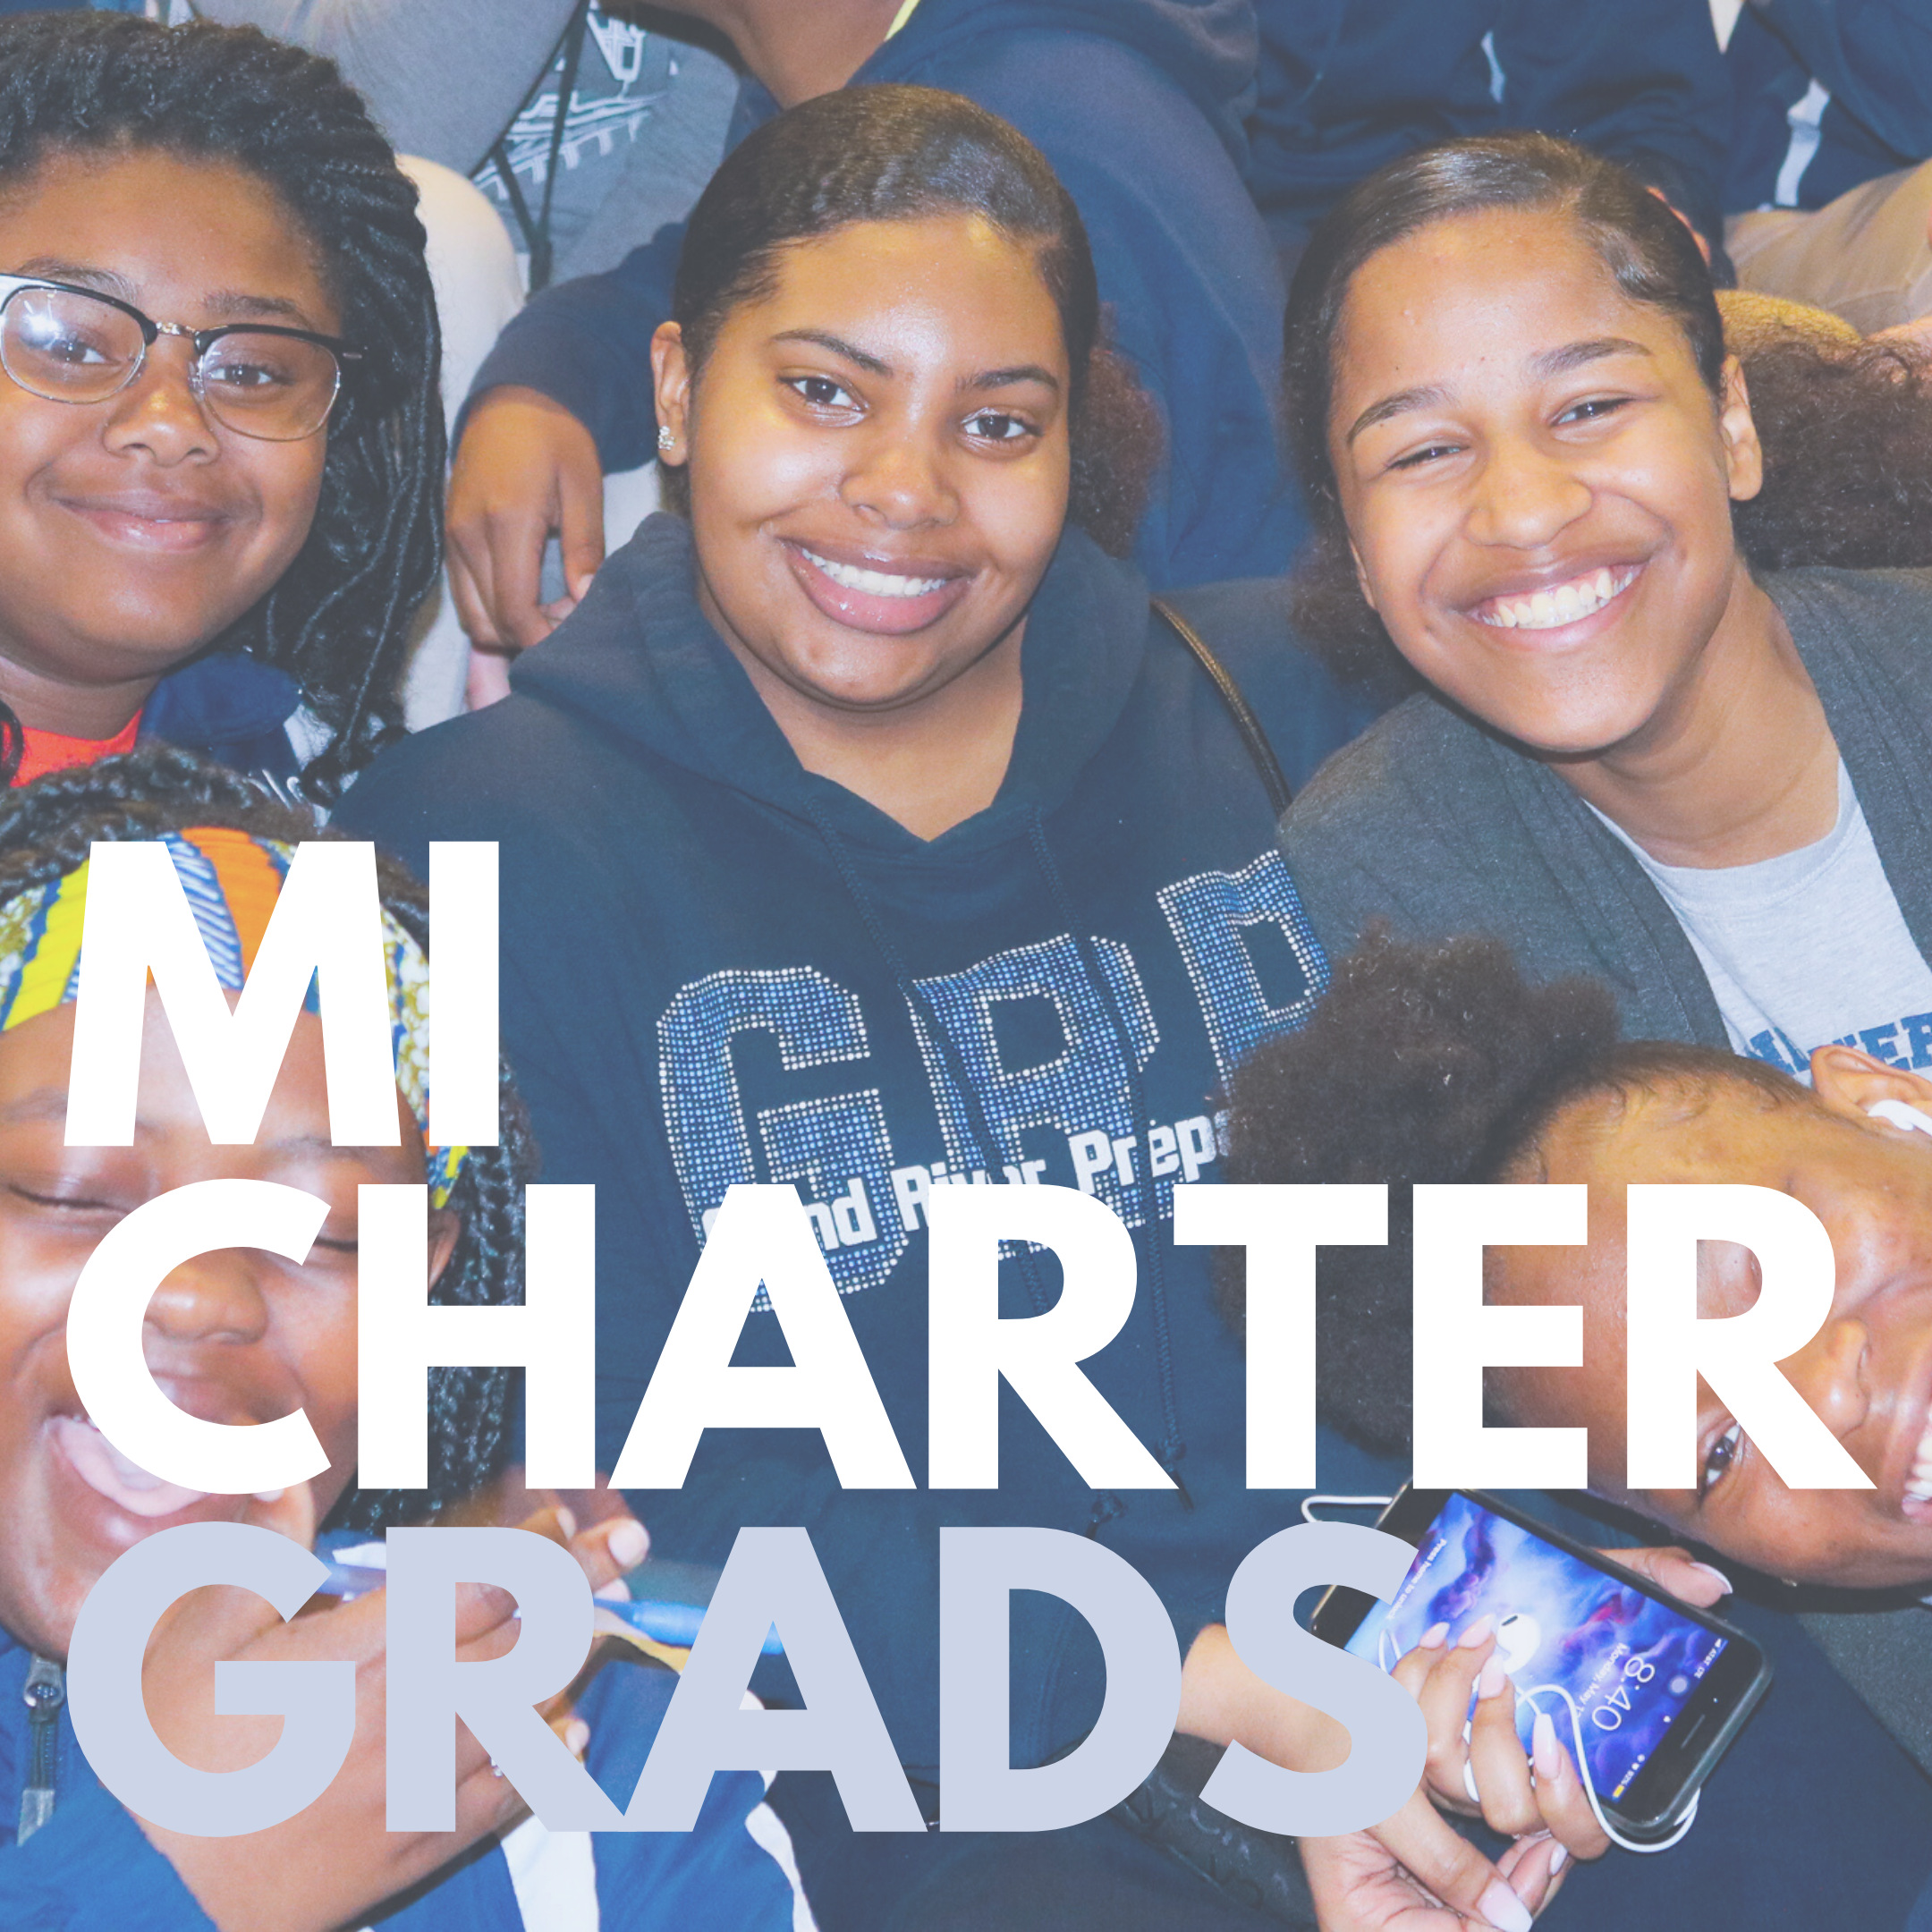 A photo of five black high school charter students, who are sporting their school swag and smiling at the camera.